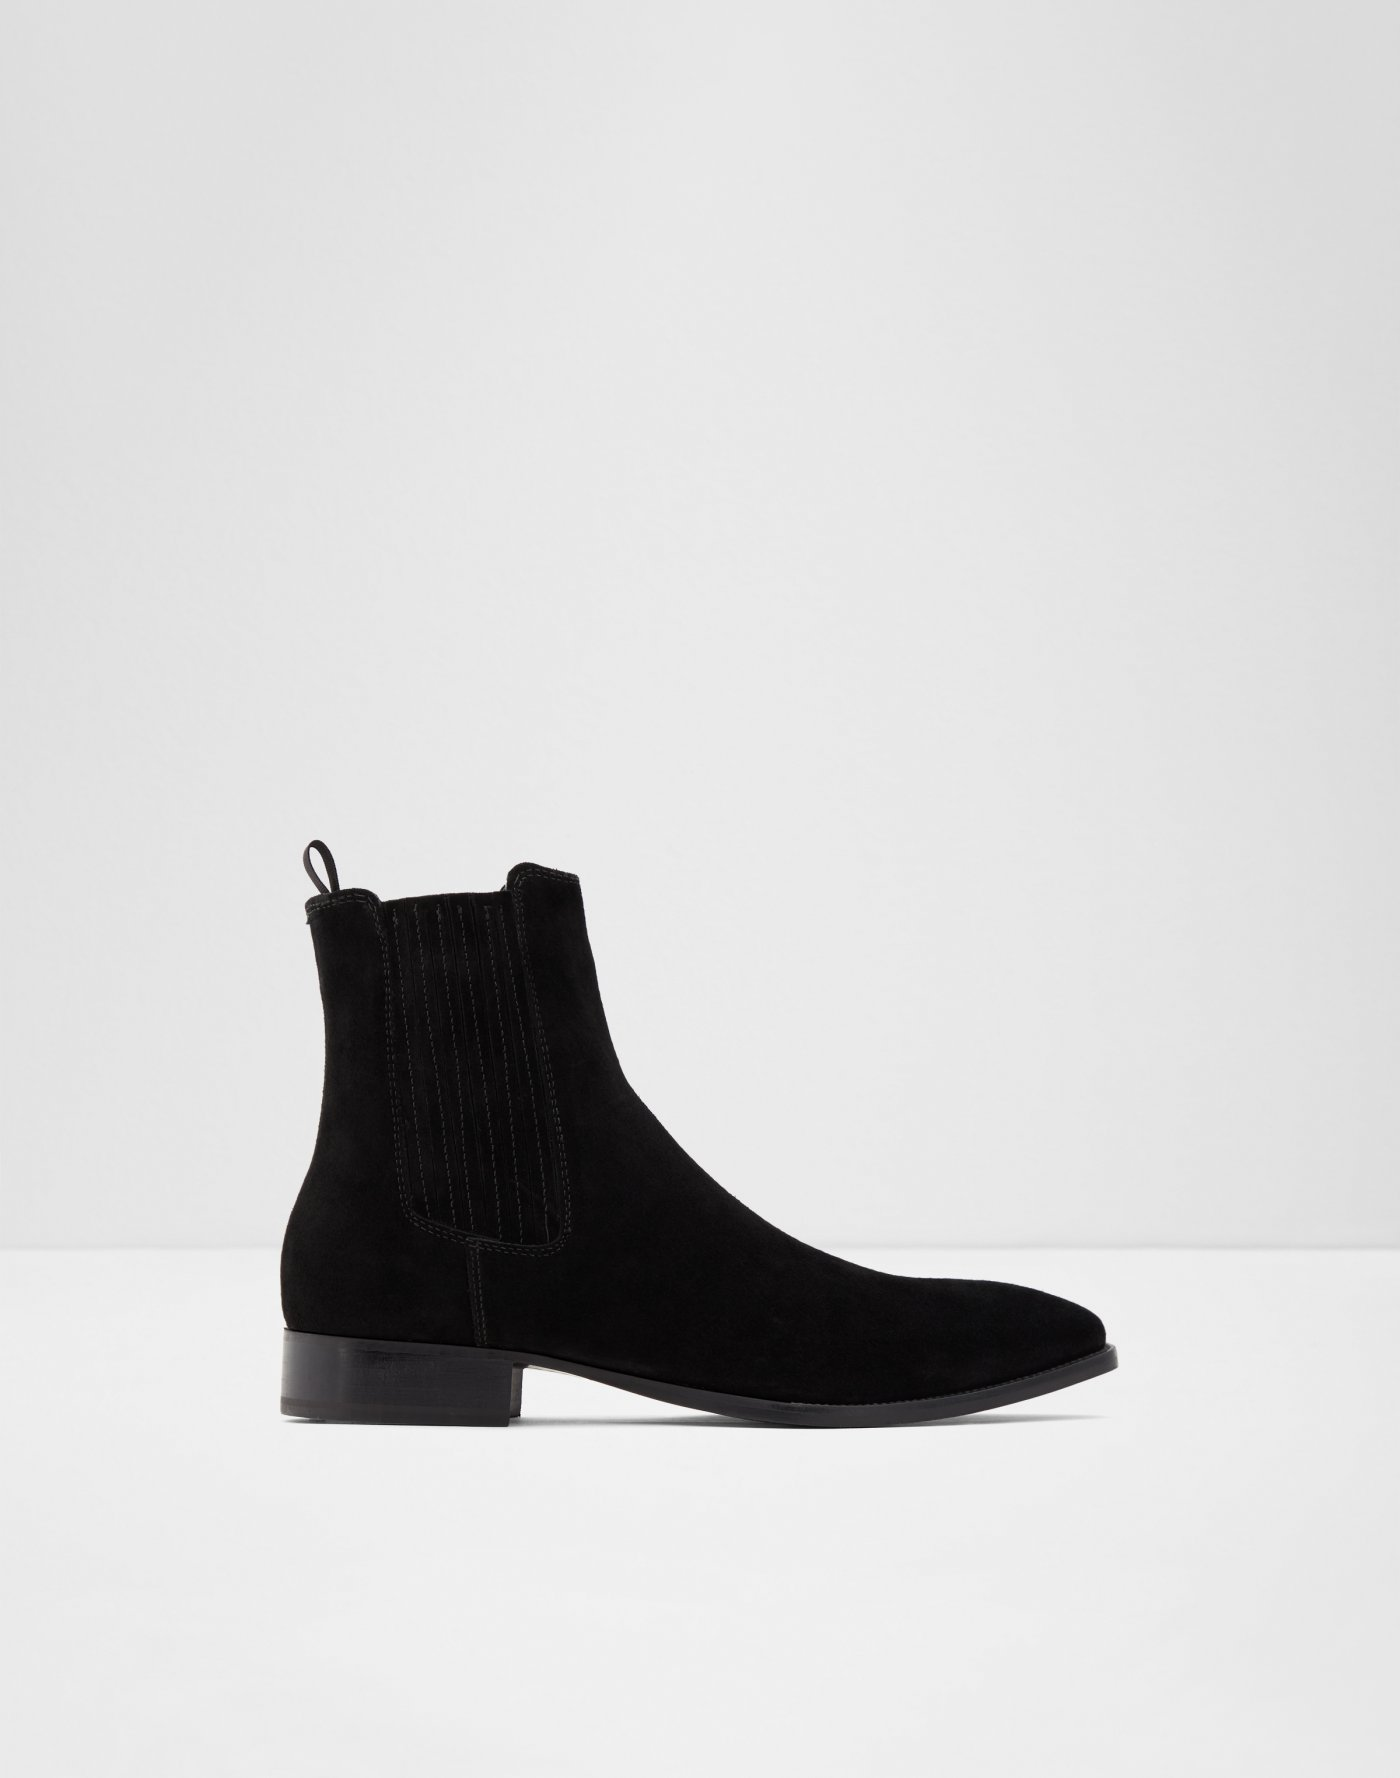 1063ac33ea8 Men's Boots | Dress & Chelsea Boots For Men | ALDO US | Aldoshoes.com US